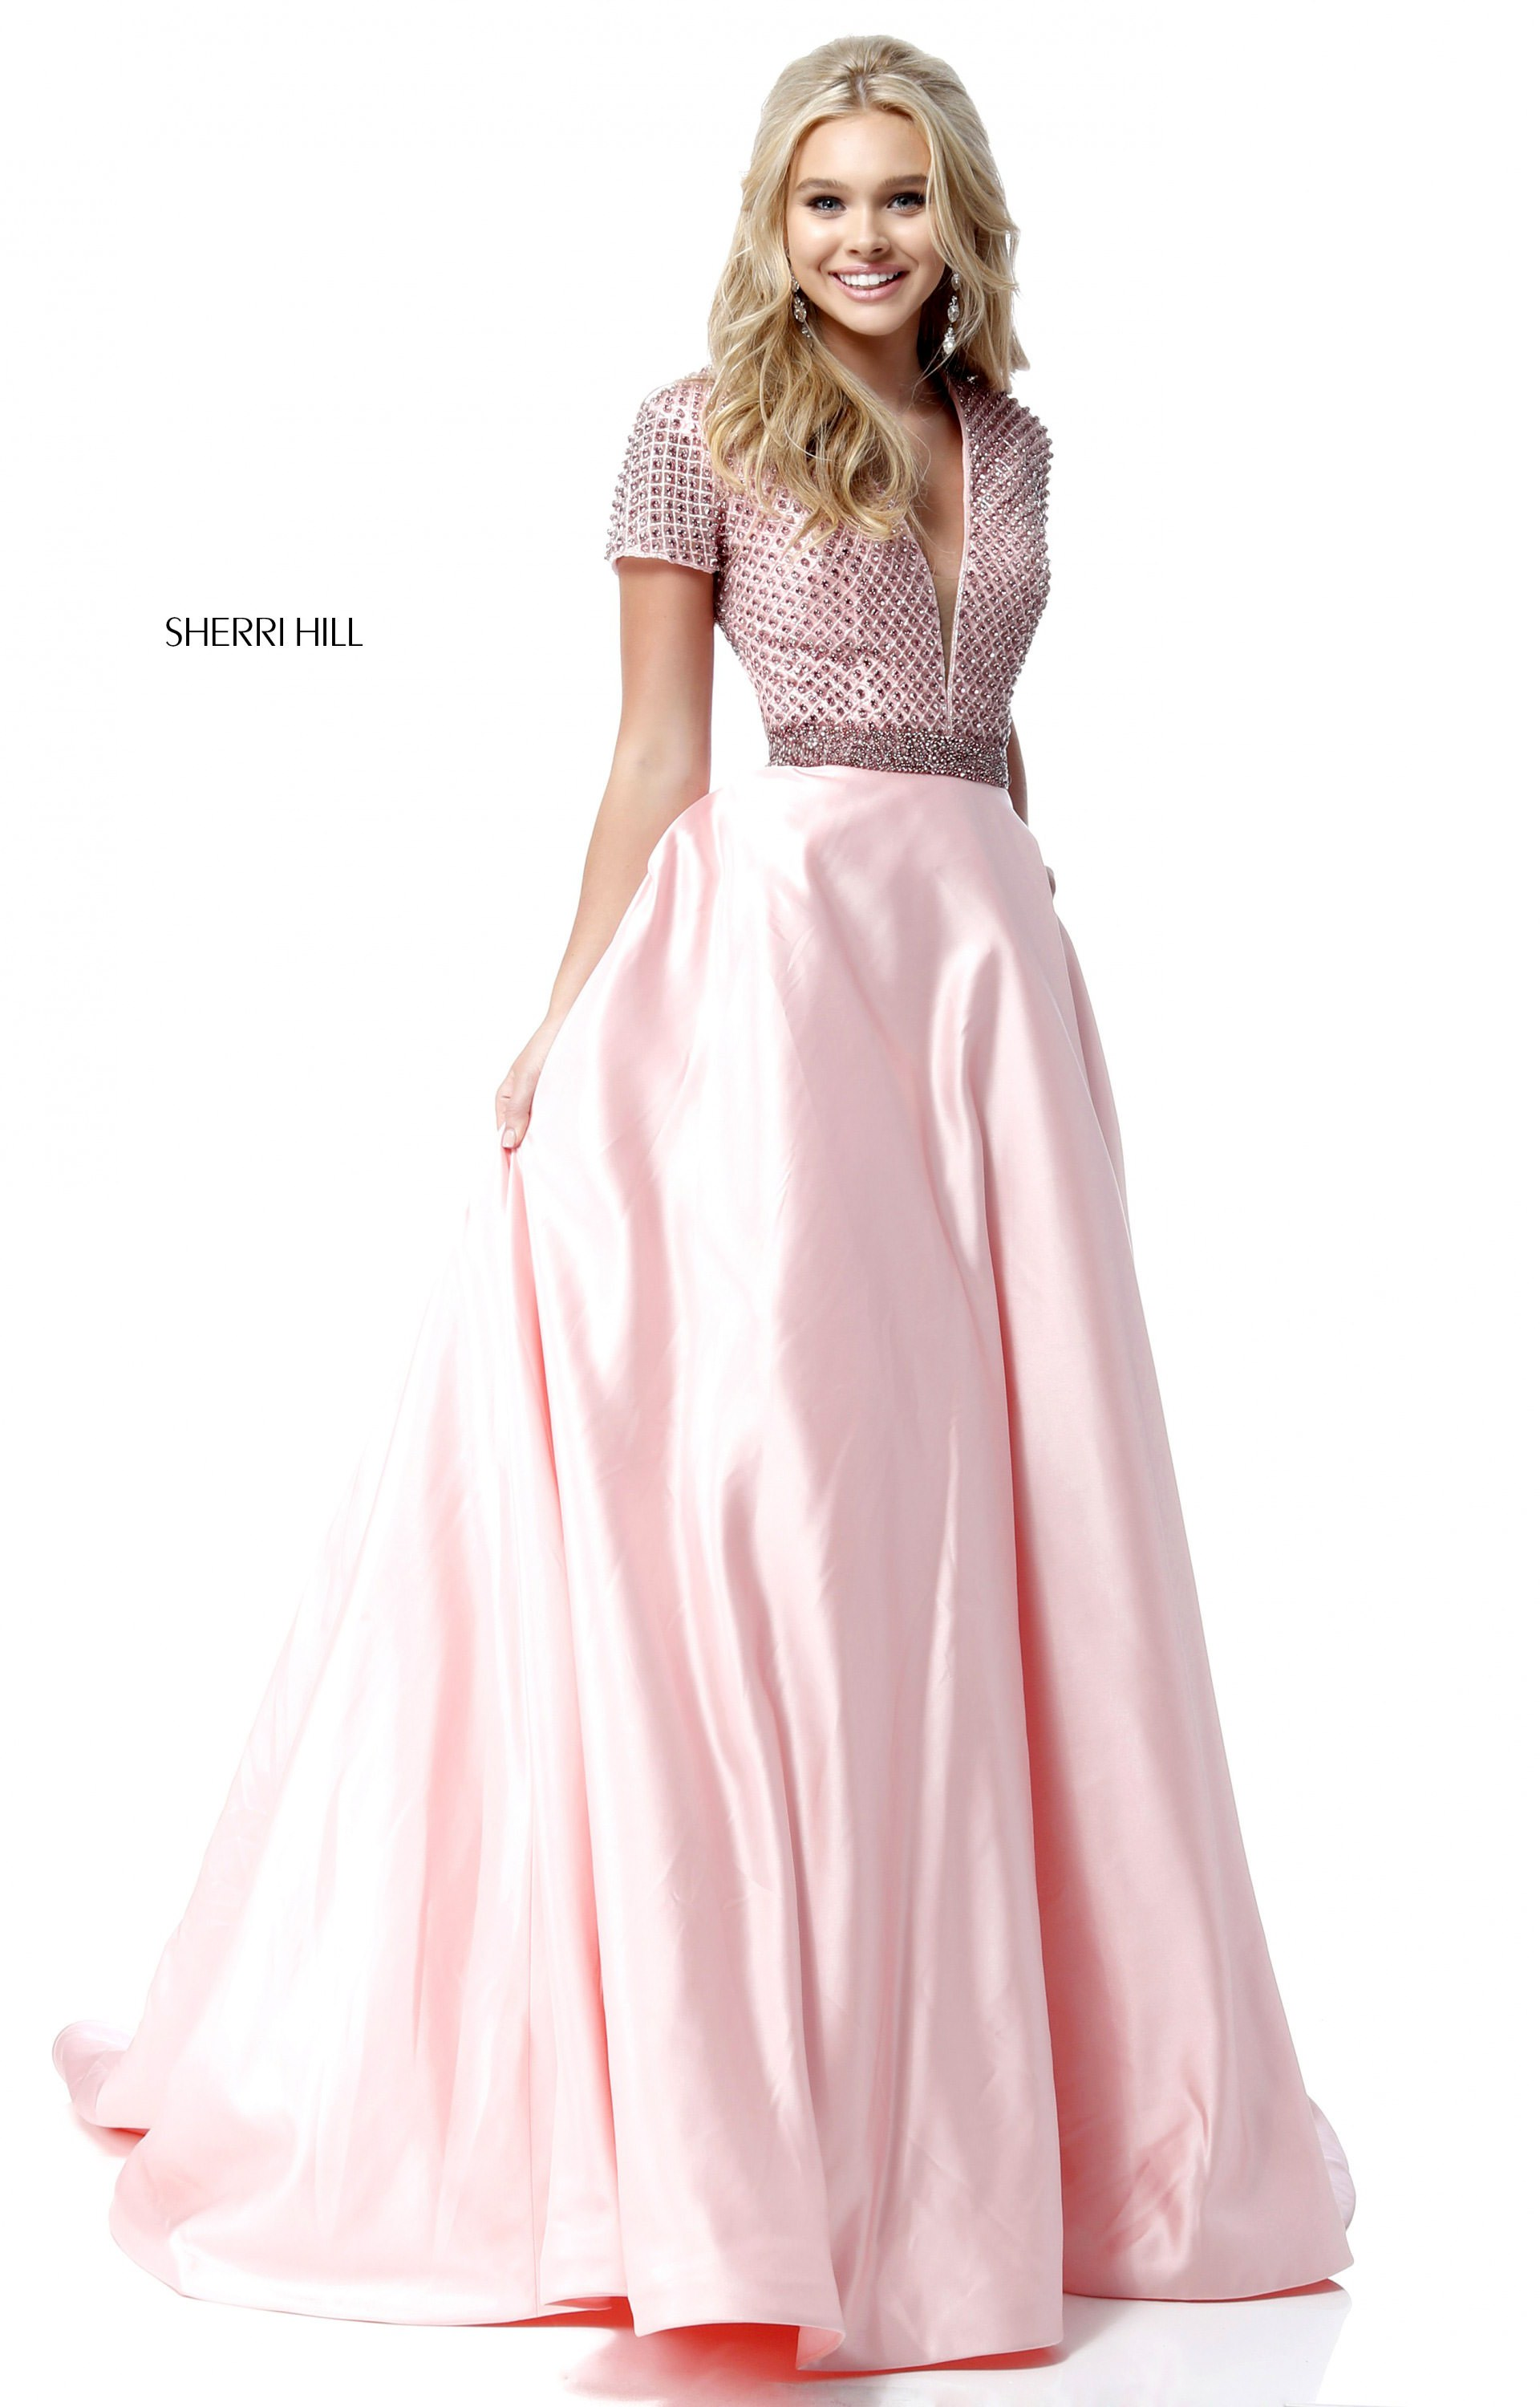 Sherri Hill 51819 V Neck Satin Ball Gown Prom Dress